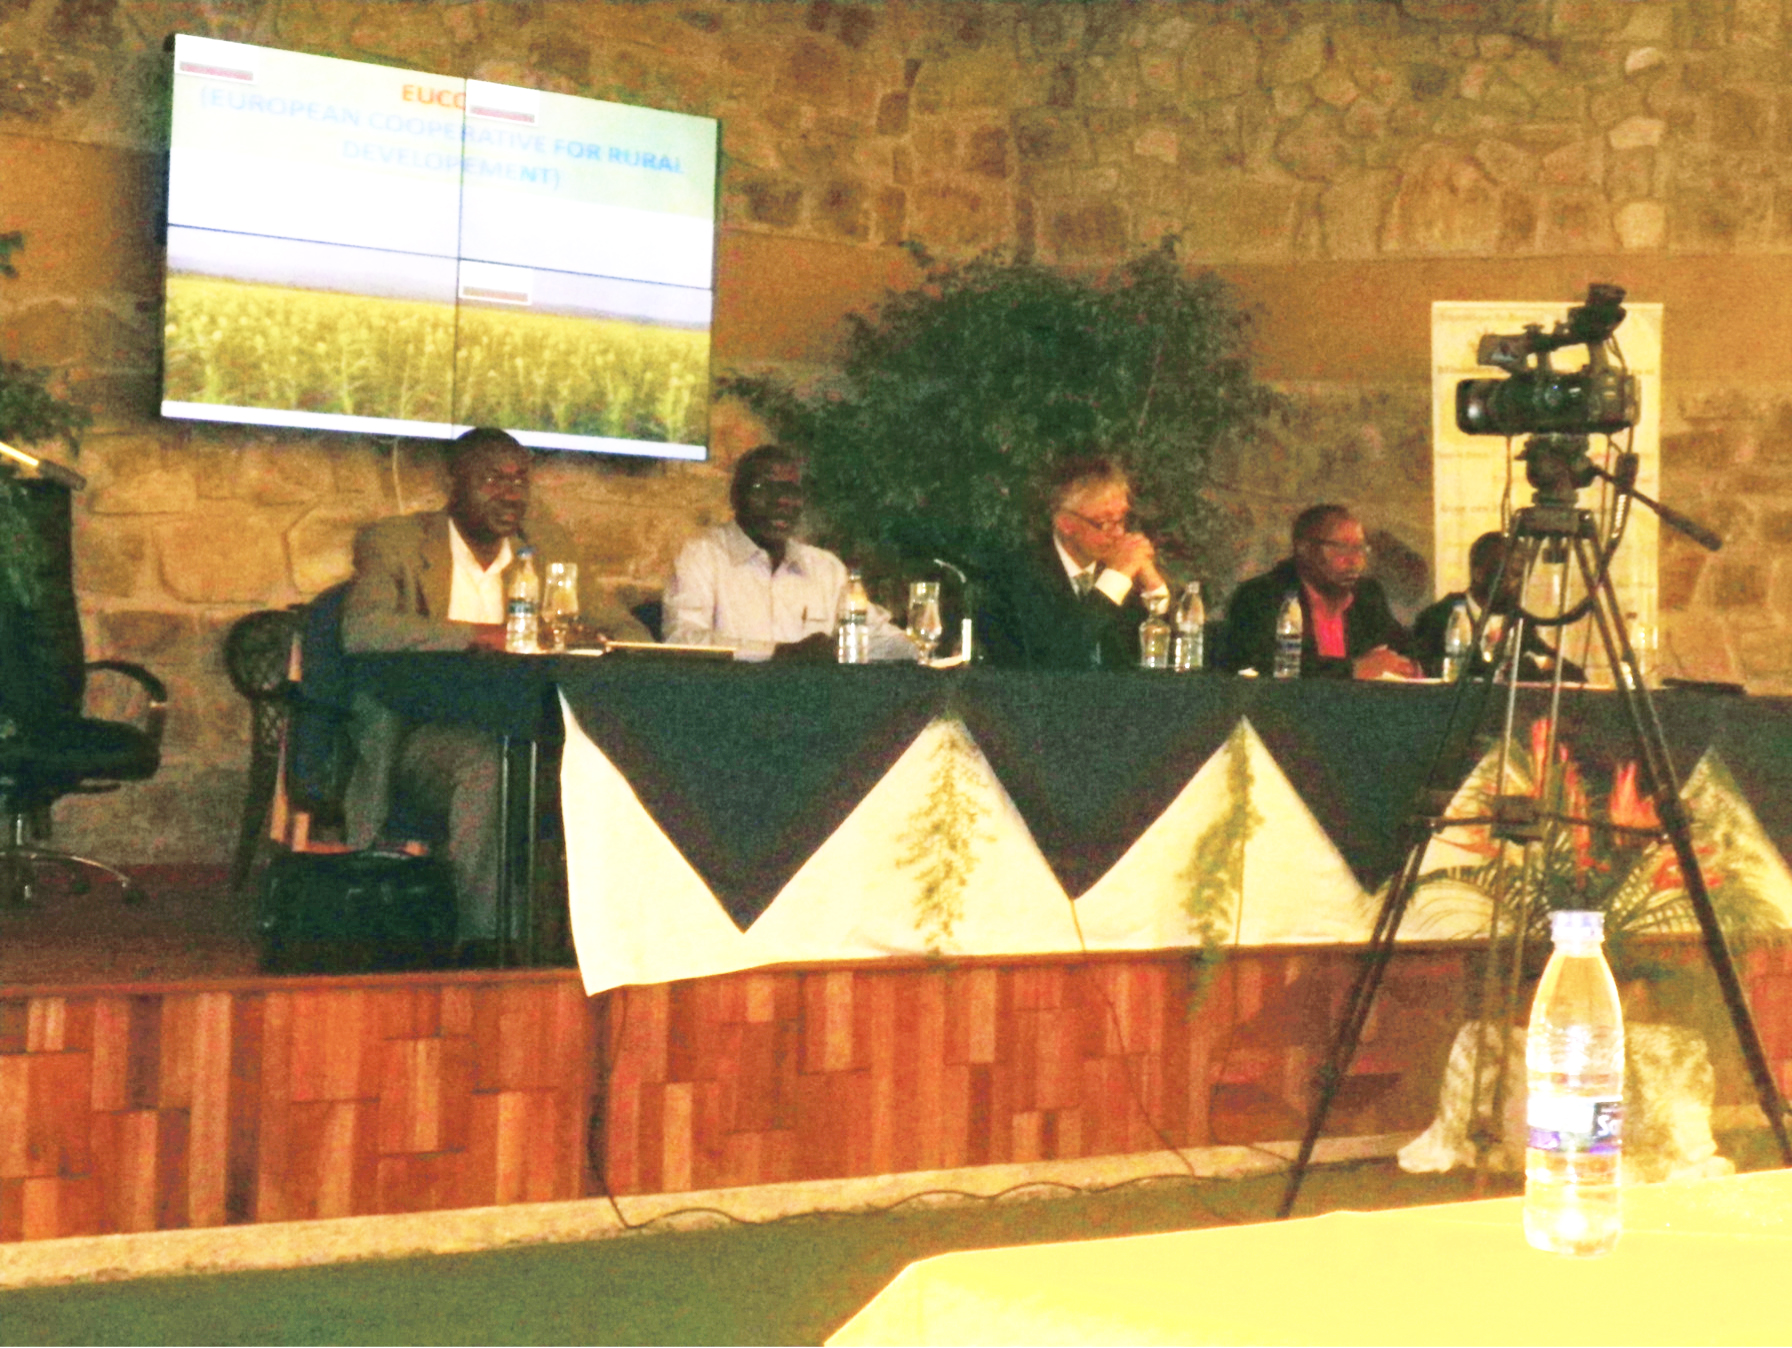 Forum panelists including IITA's Dr Emmanuel Njukwe on the far left.